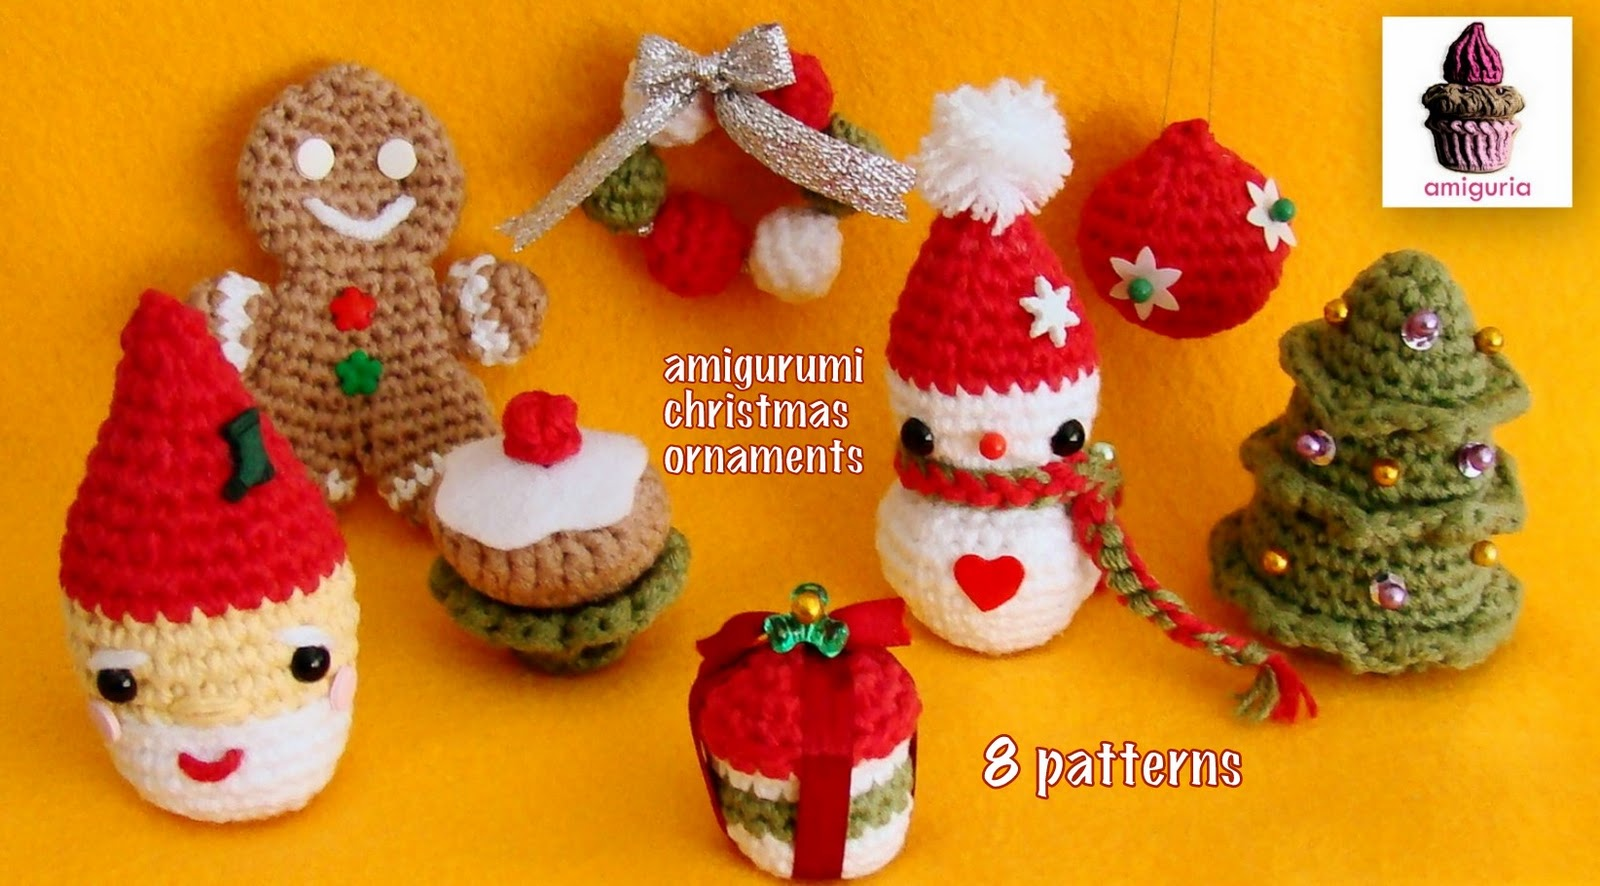 amiguria amigurumi: 8 Amigurumi Christmas Patterns!